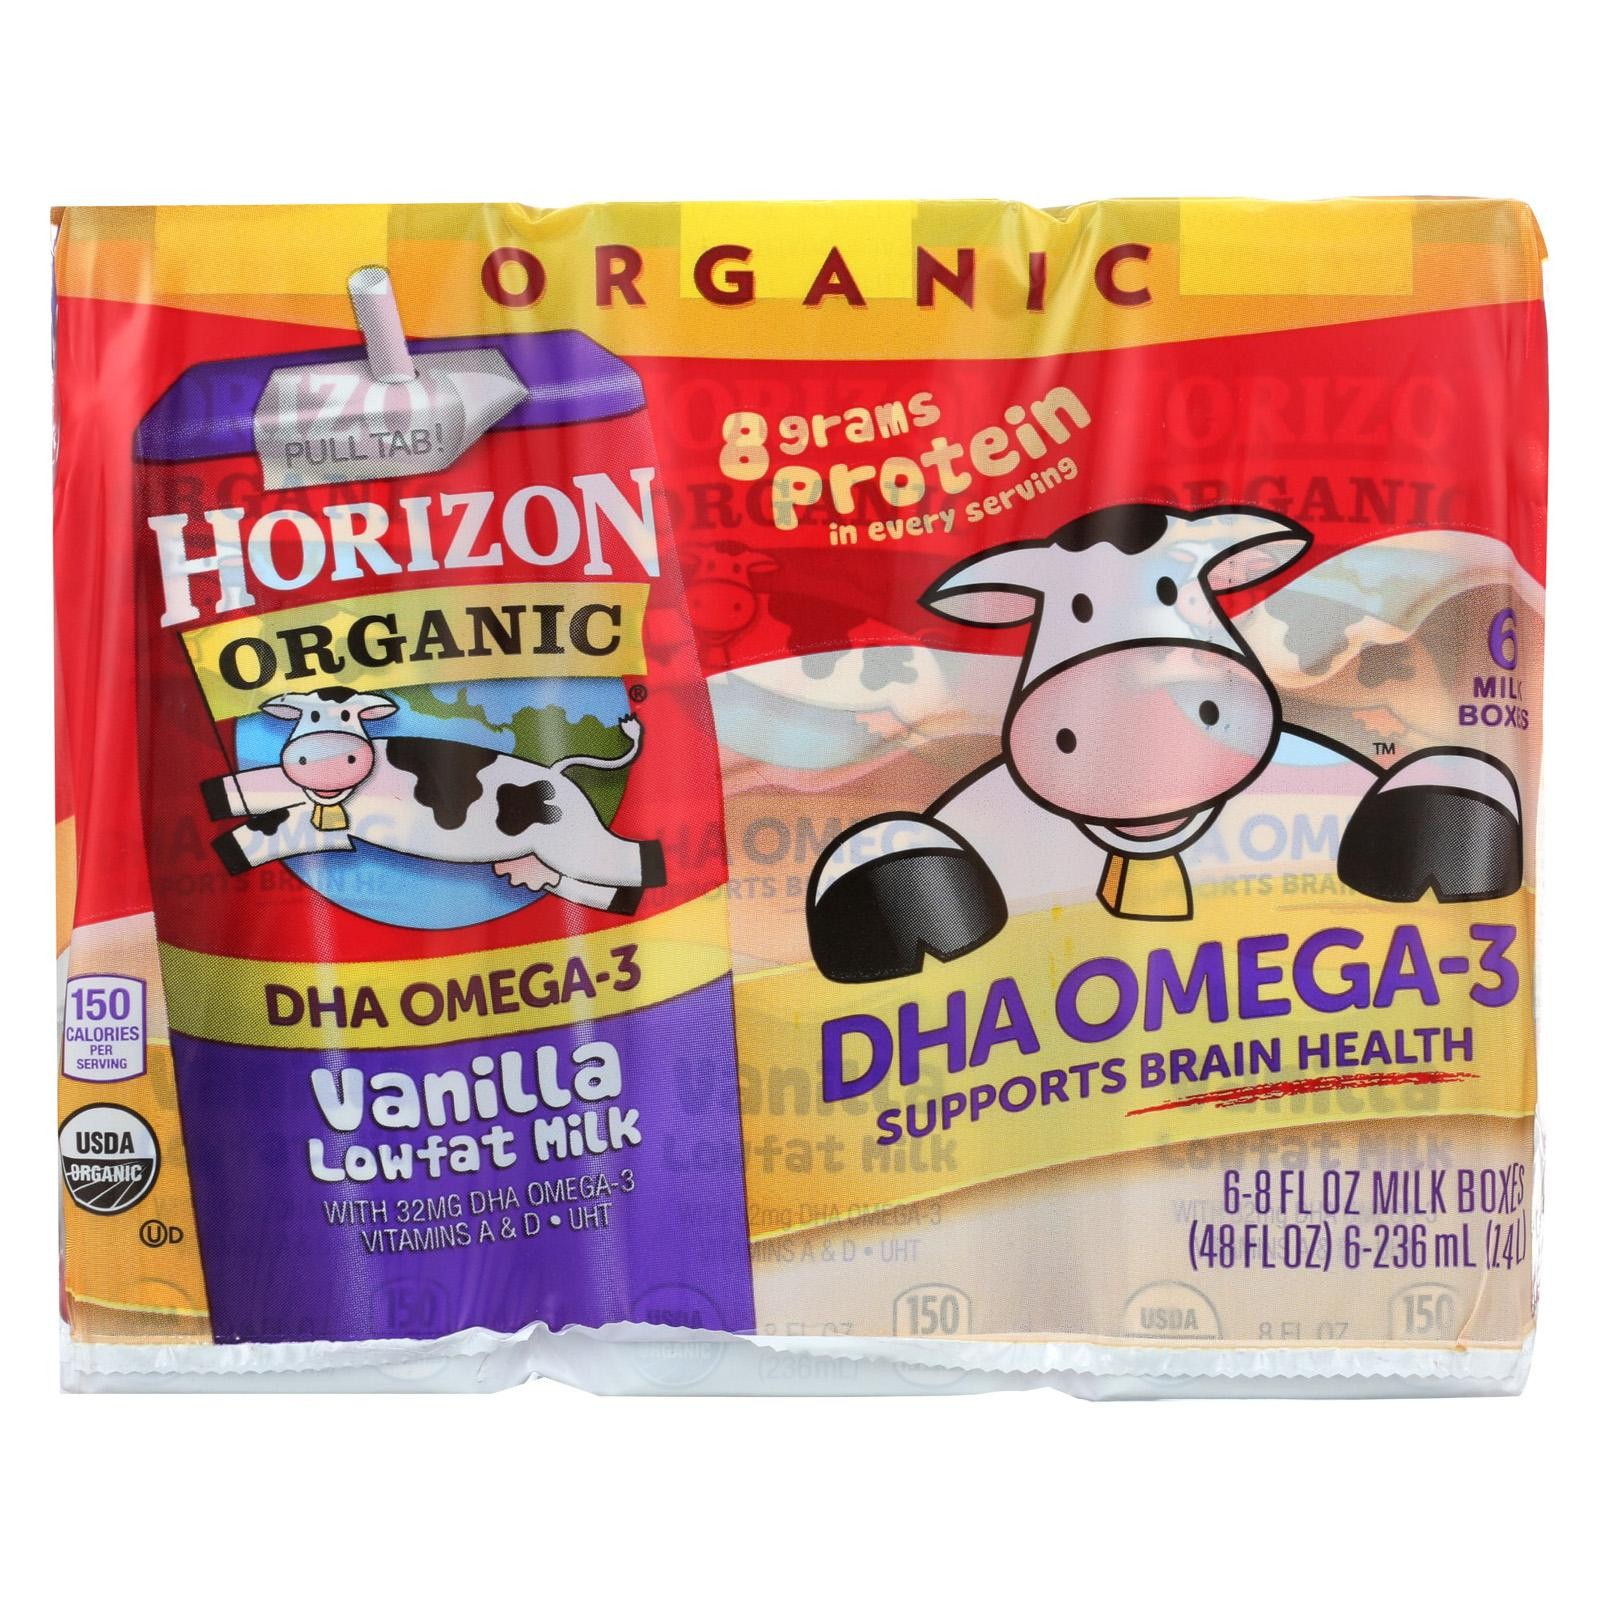 Horizon Organic Dairy Organic Low Fat 1 % Milk - Vanilla - Pack of 3 - 6/8 Fl Oz